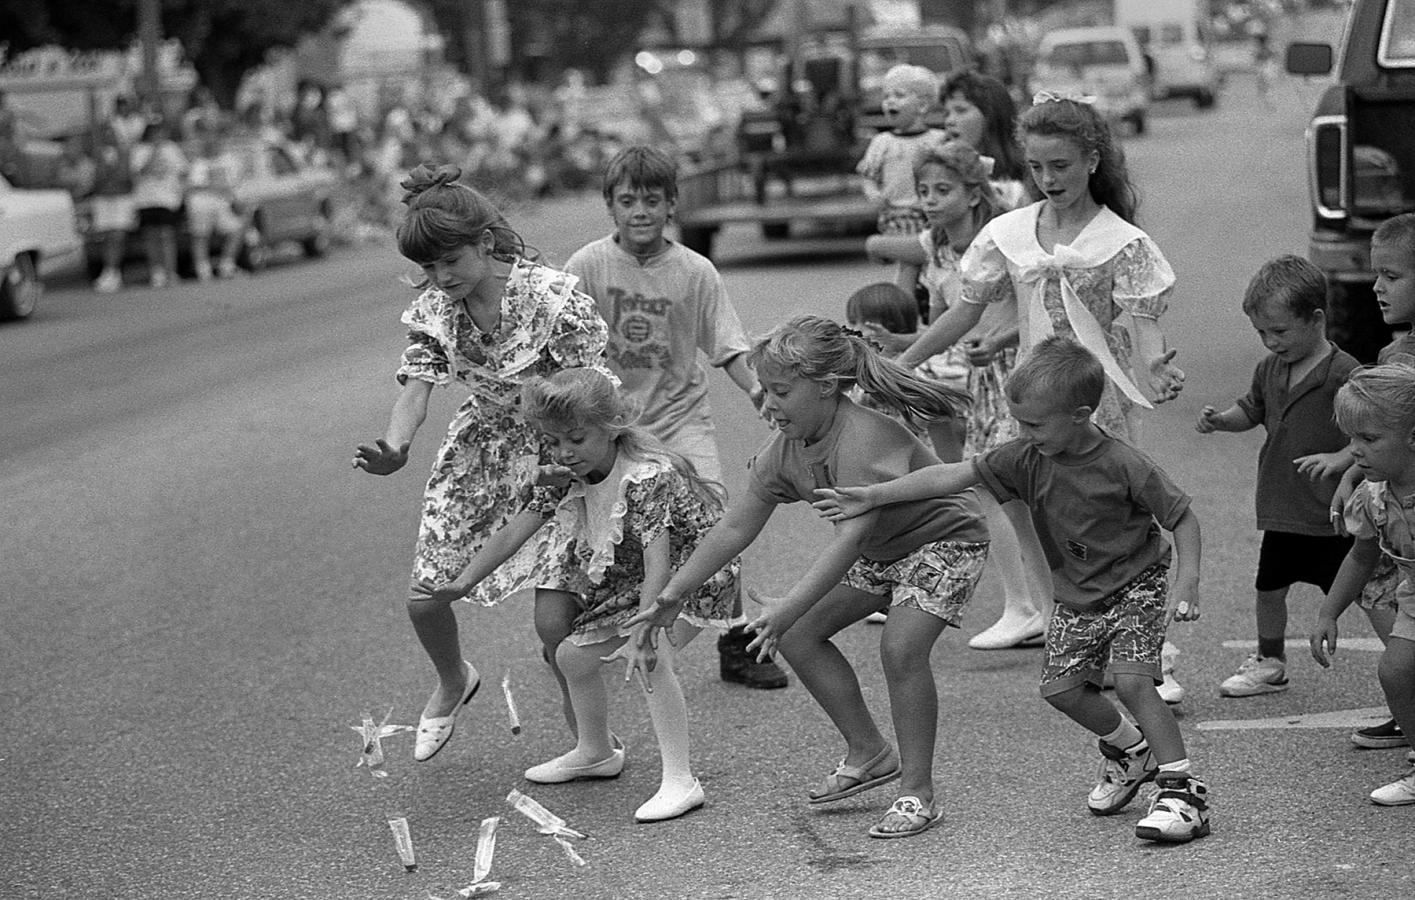 Corydon Halloween Parade 2020 My early career is on full display in black and white | NPPA